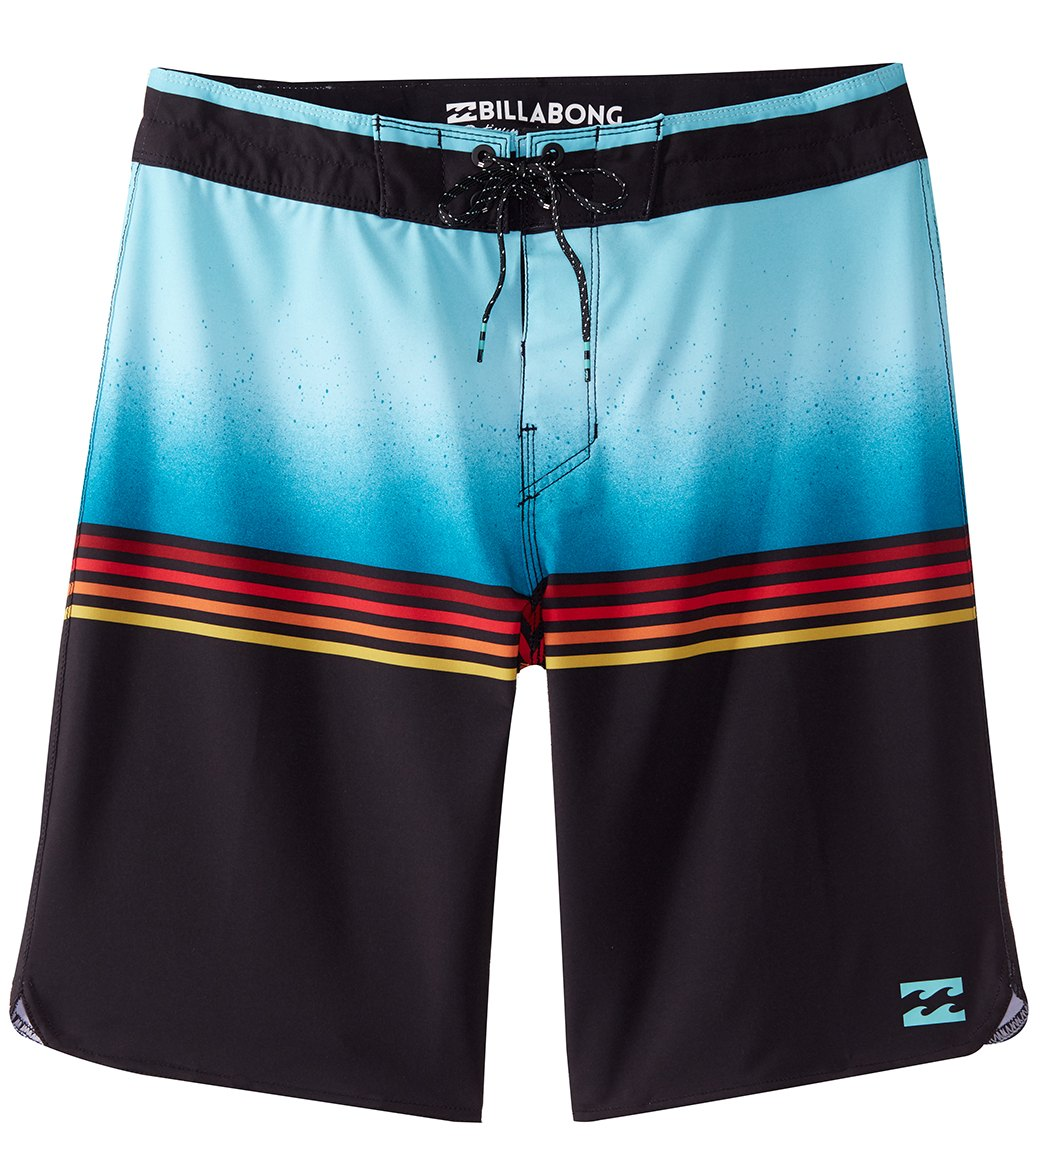 57644420df71 Billabong Men's Fifty 50 X Boardshort at SwimOutlet.com - Free Shipping